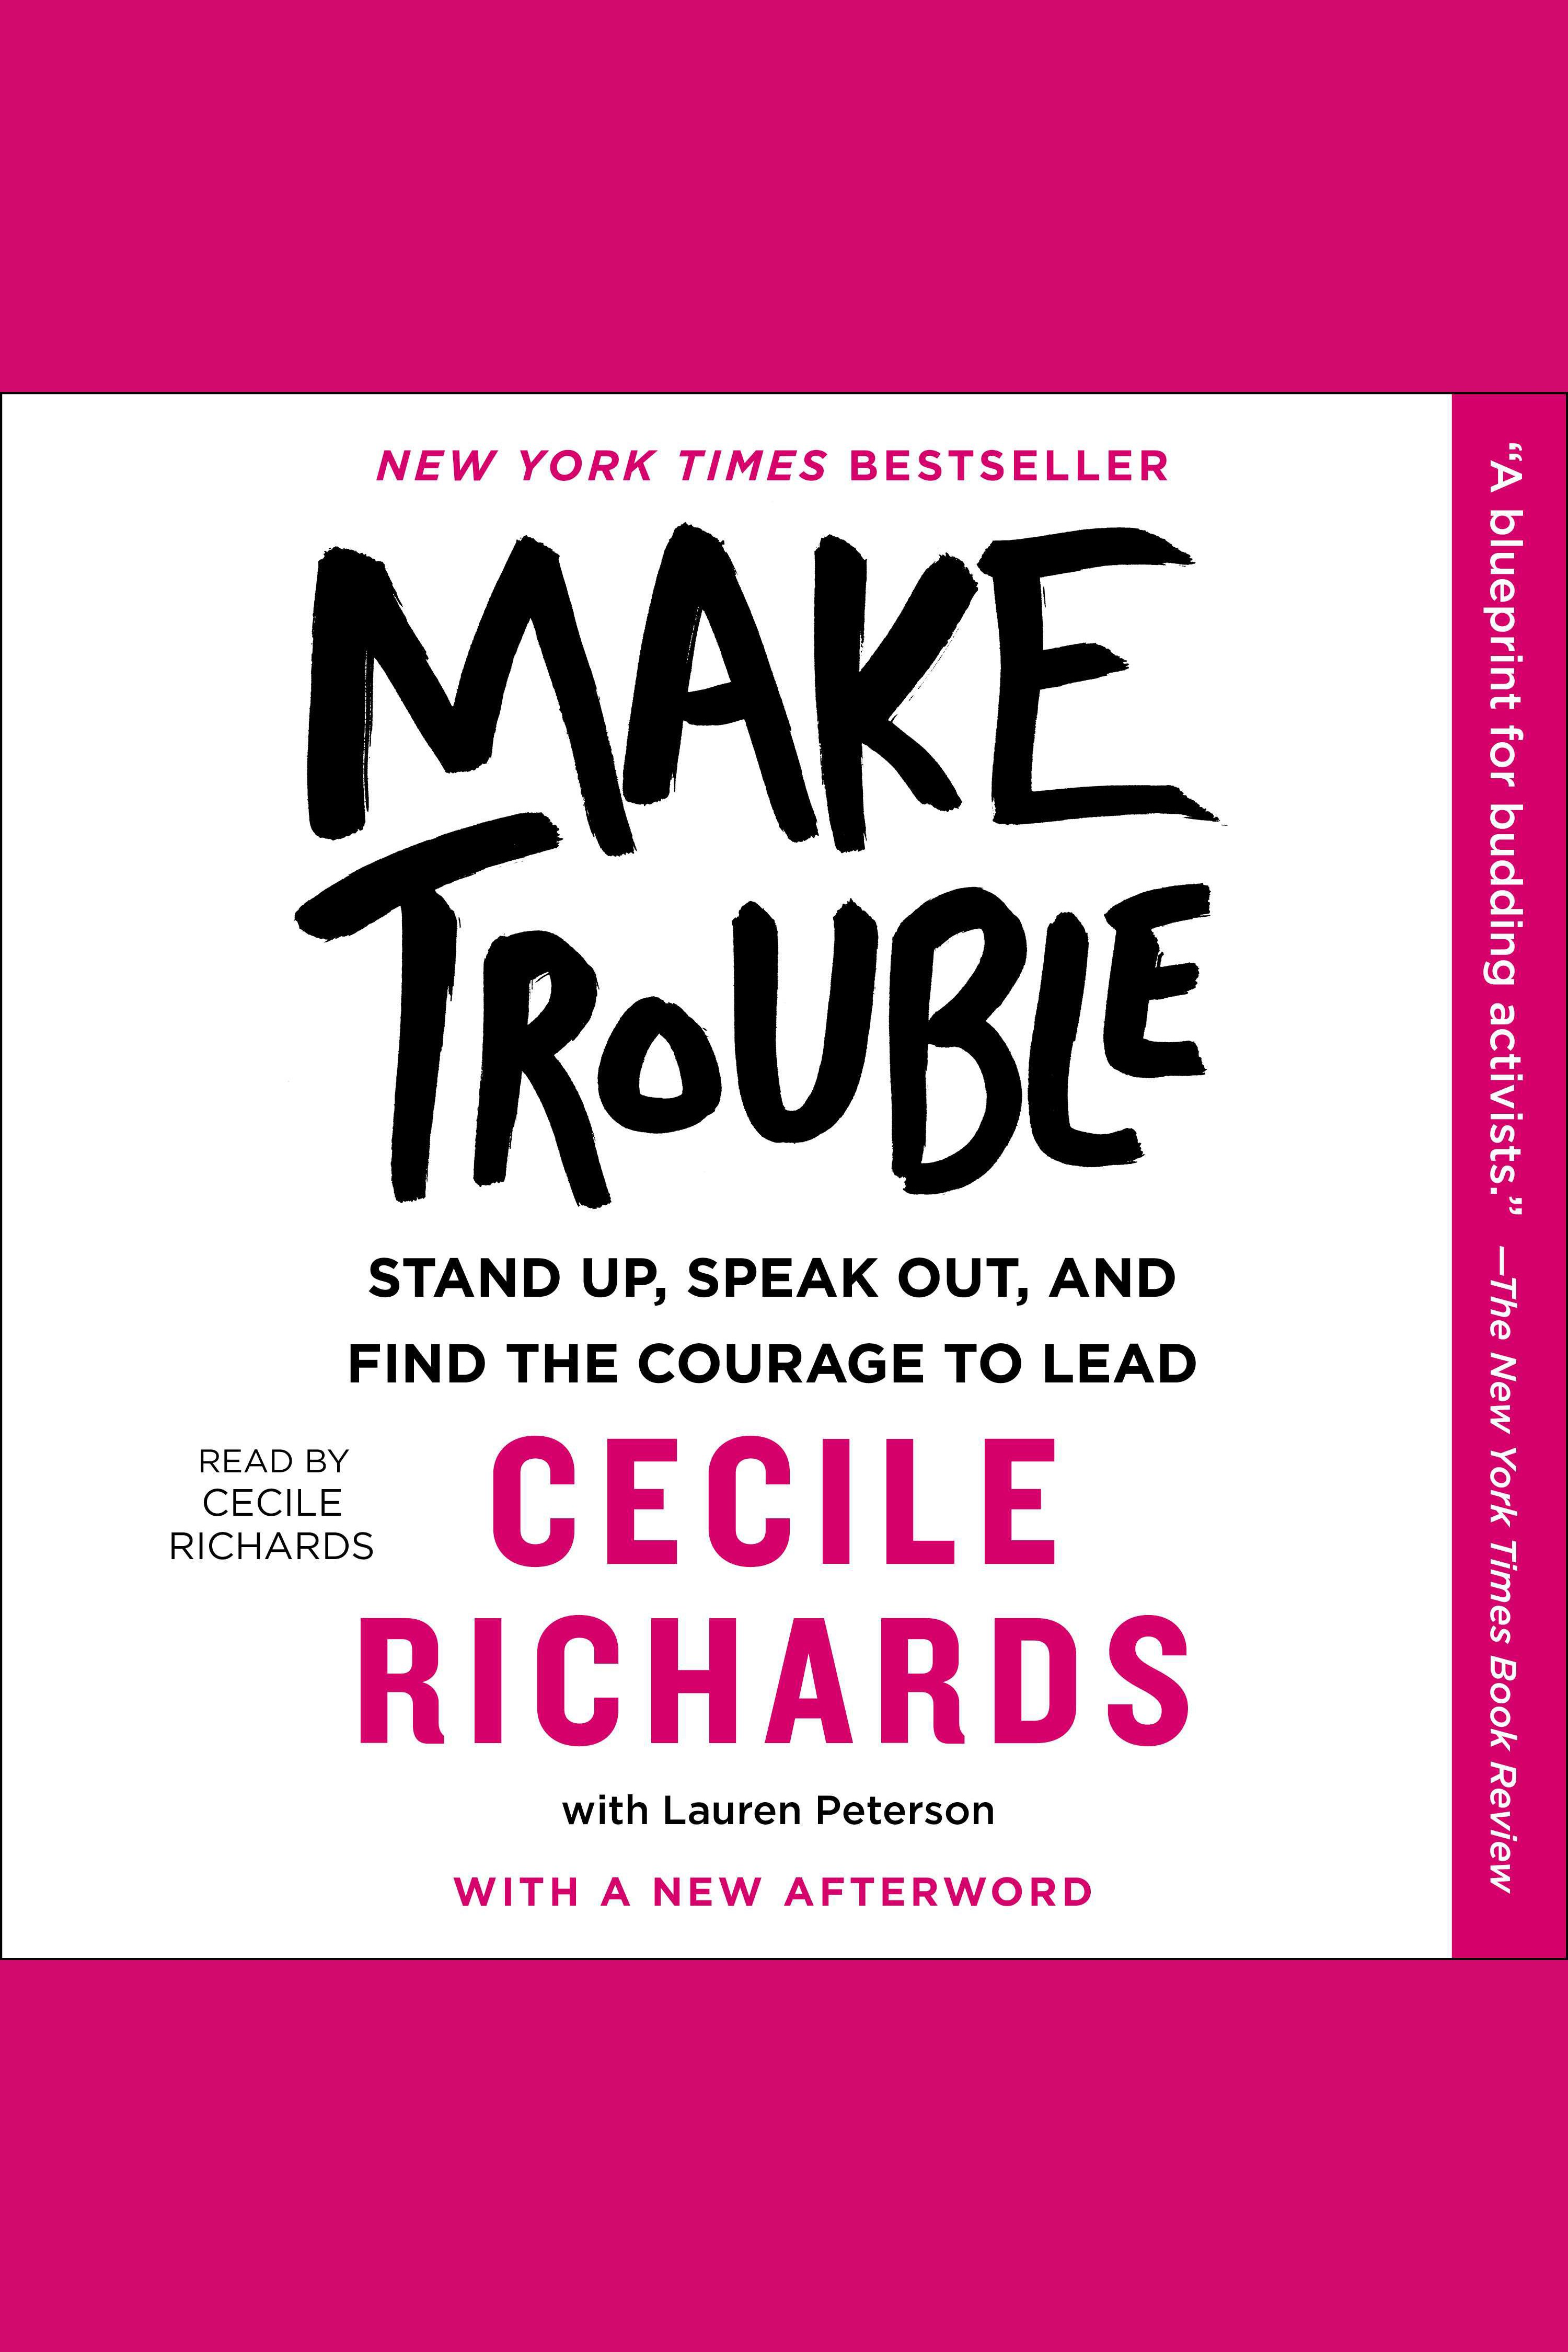 Make trouble standing up, speaking out, and finding the courage to lead